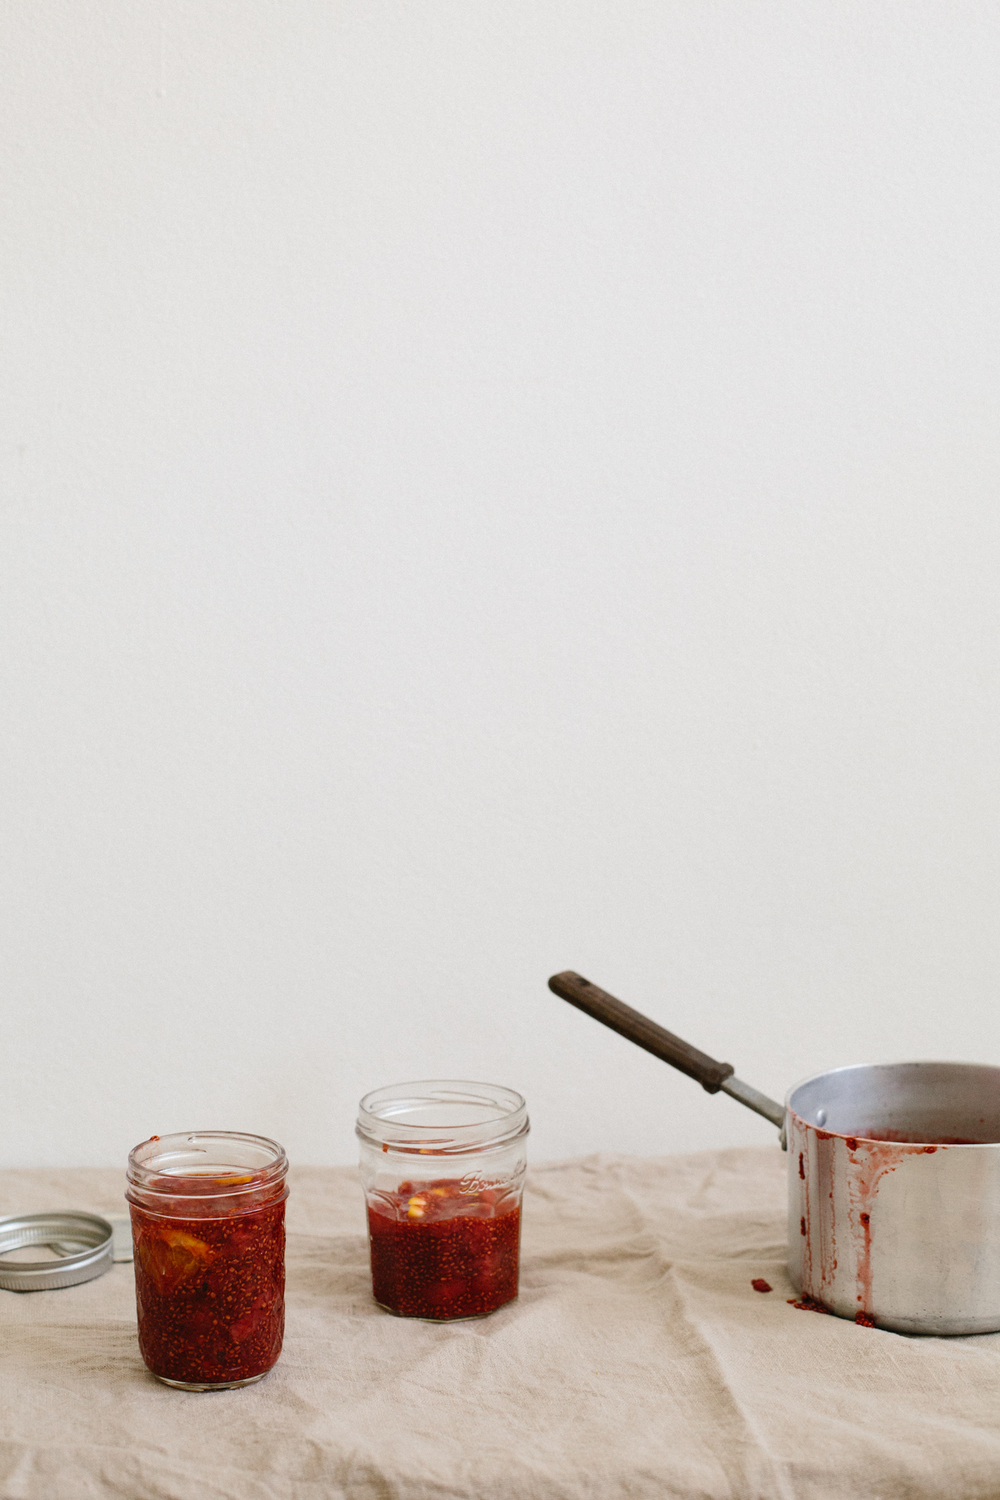 Strawberry + Blood Orange Chia Jam | Erika Rax